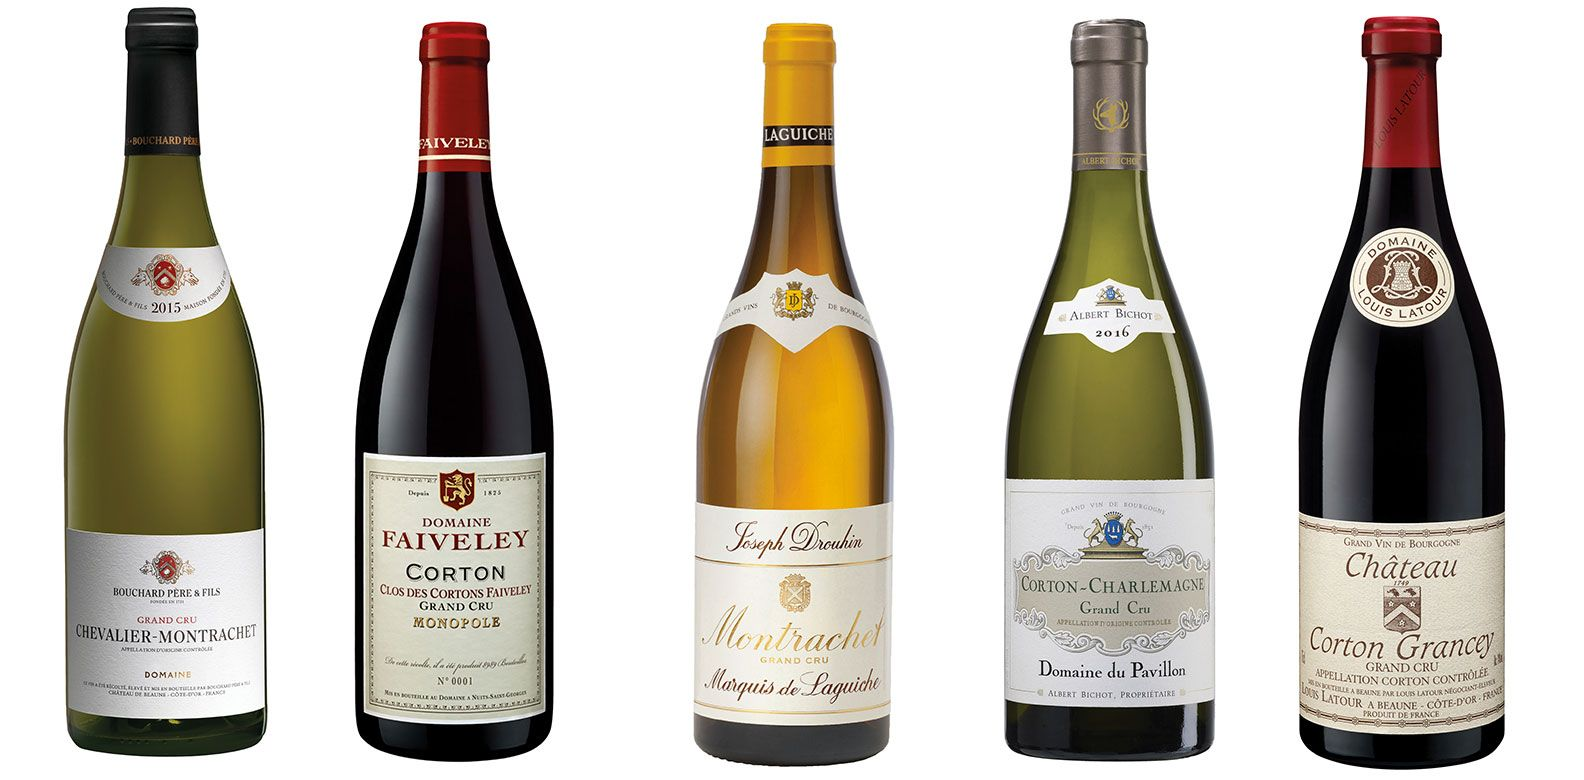 10 Burgundy Wines To Add To Your Collection